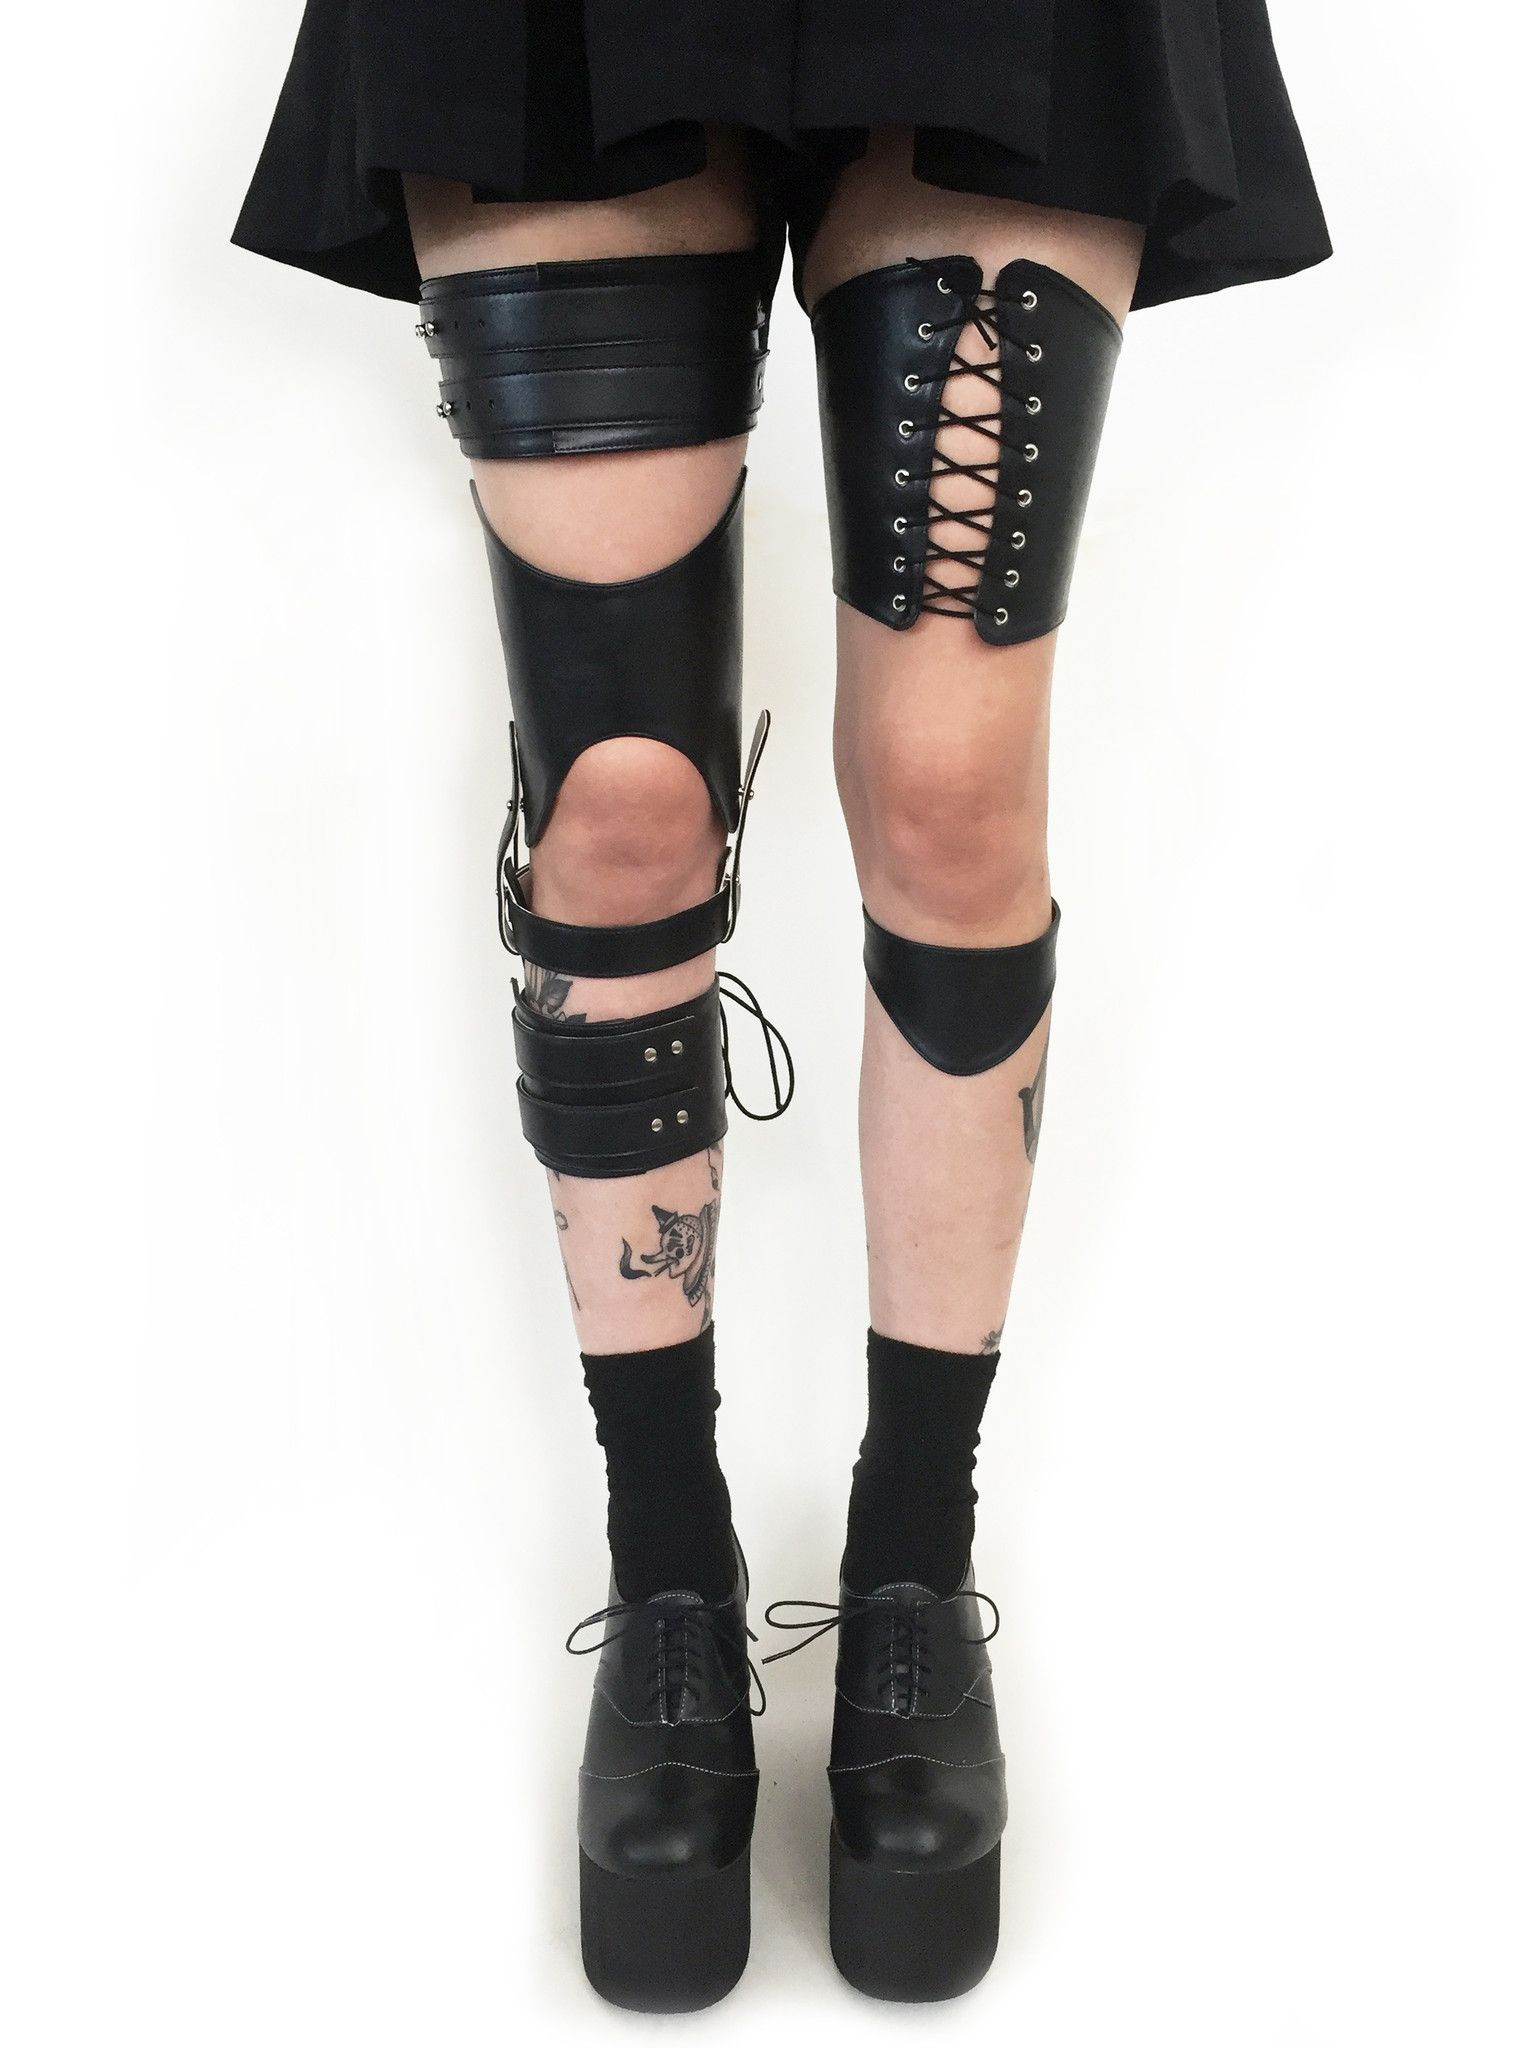 Deandri leg harness / knee brace / thigh brace